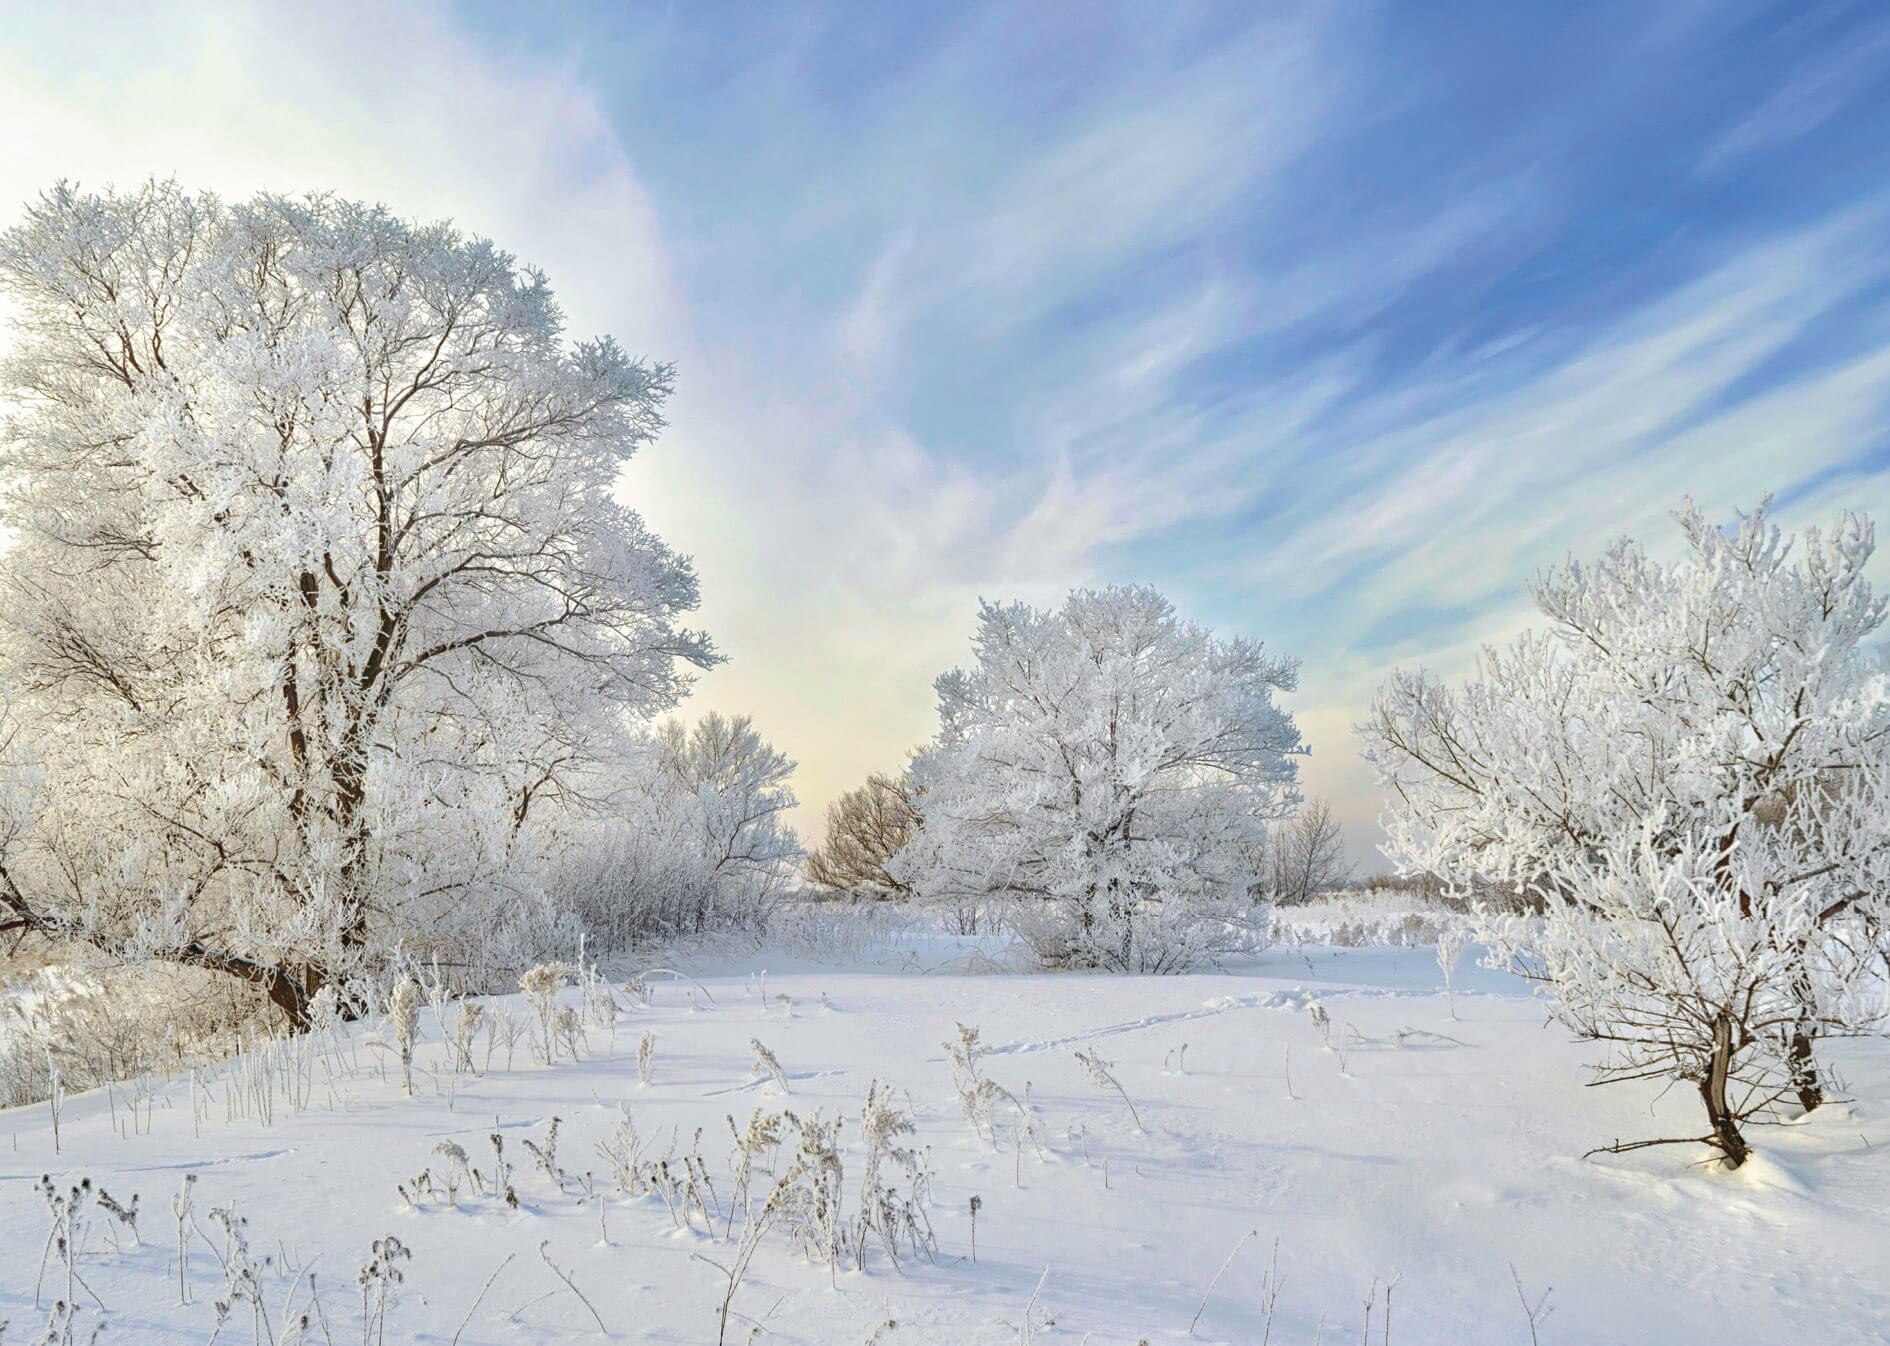 The Hoarfrost